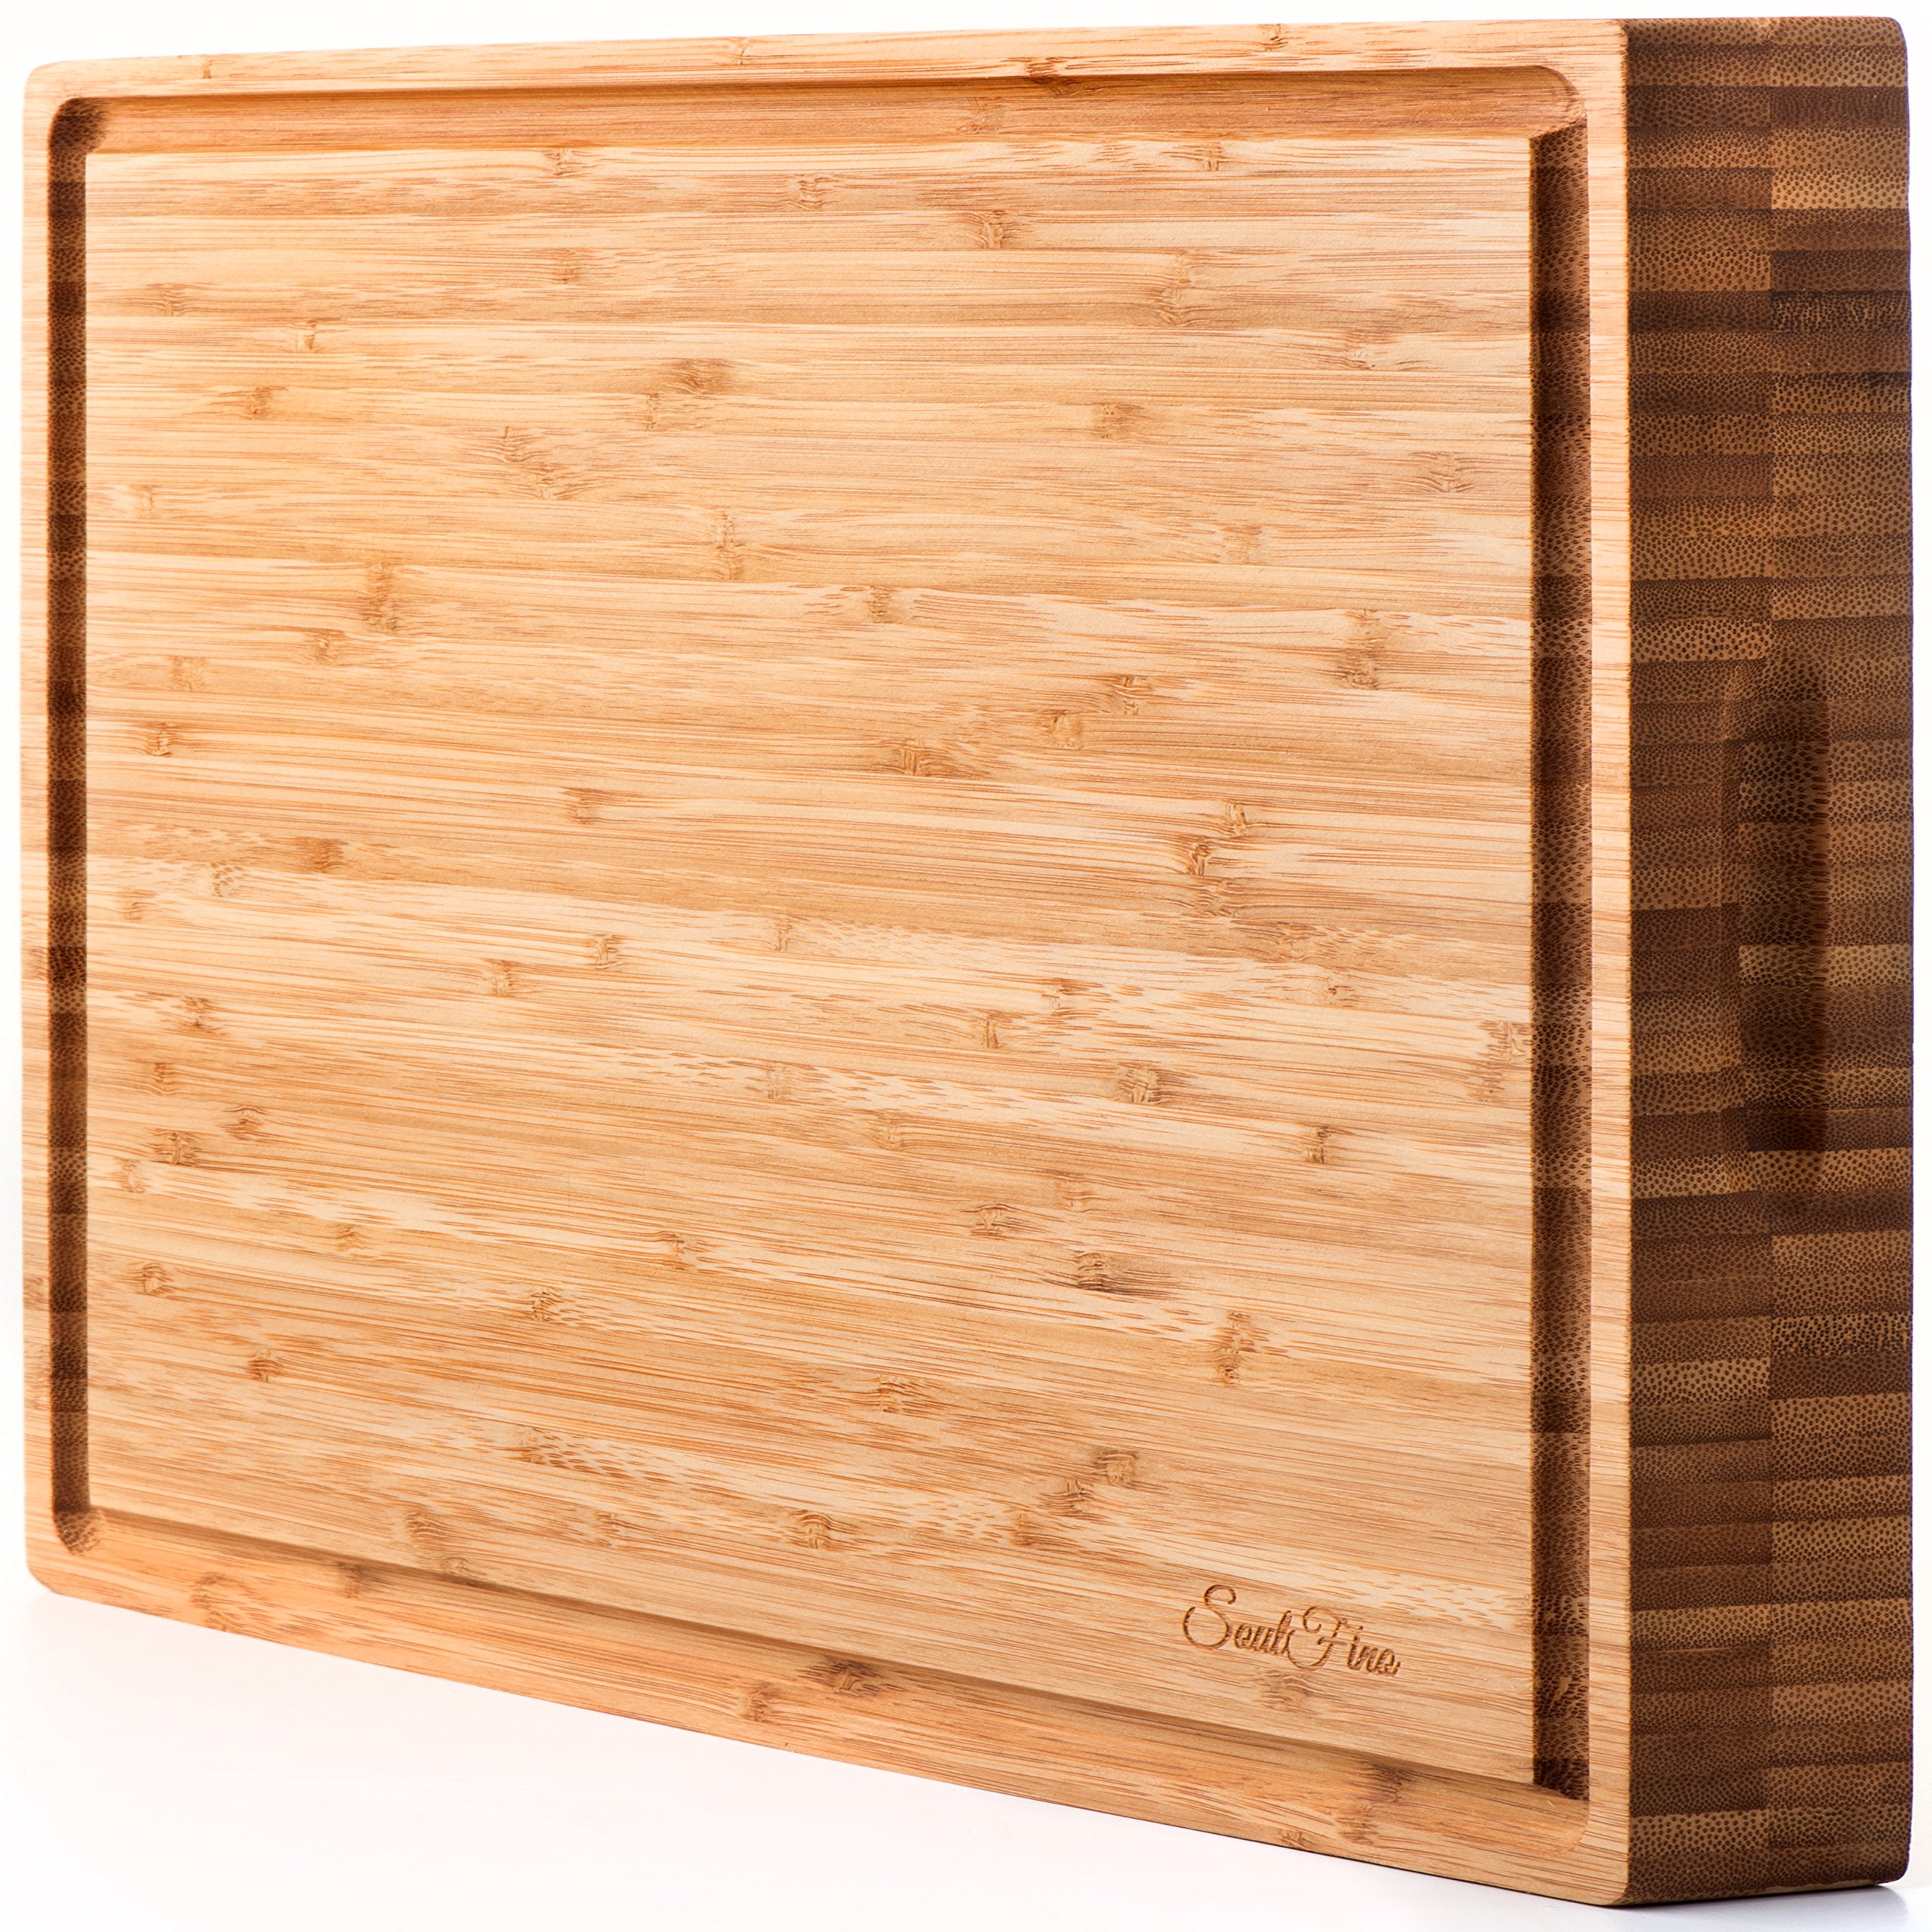 PREMIUM Bamboo Cutting Board & Professional Heavy Duty Butcher Block w/ Juice Groove - Extra Large (17''x13''x1.5'') Antibacterial, Organic, End Grain Chopping Block. Ideal Serving Tray for Meat & Cheese by SoulFino